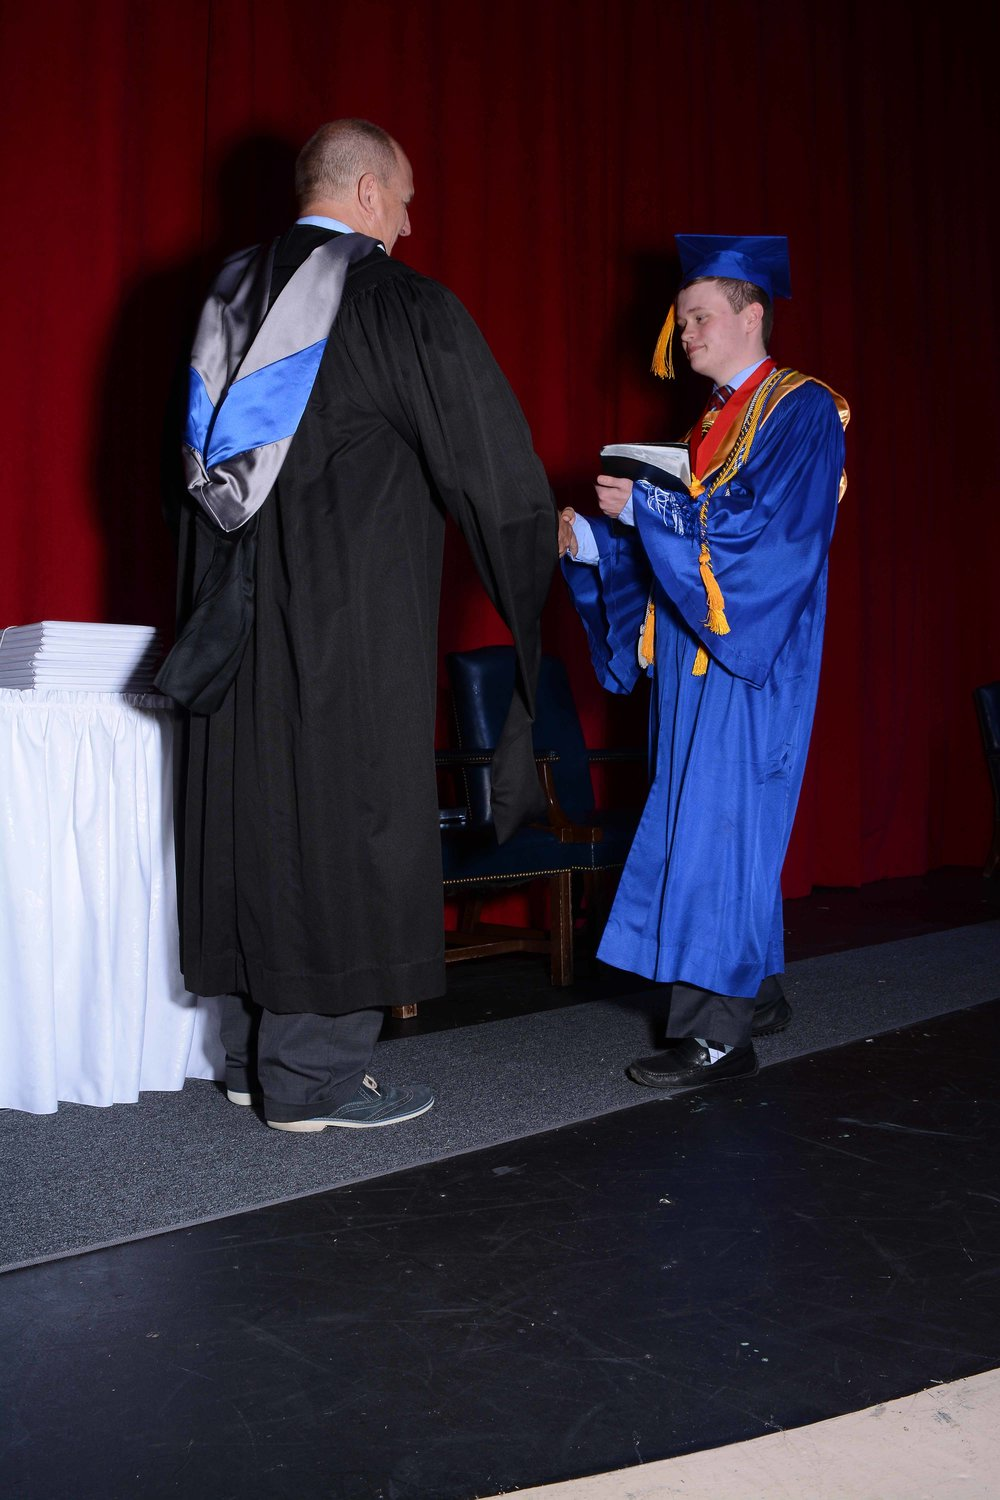 May14 Commencement09.jpg